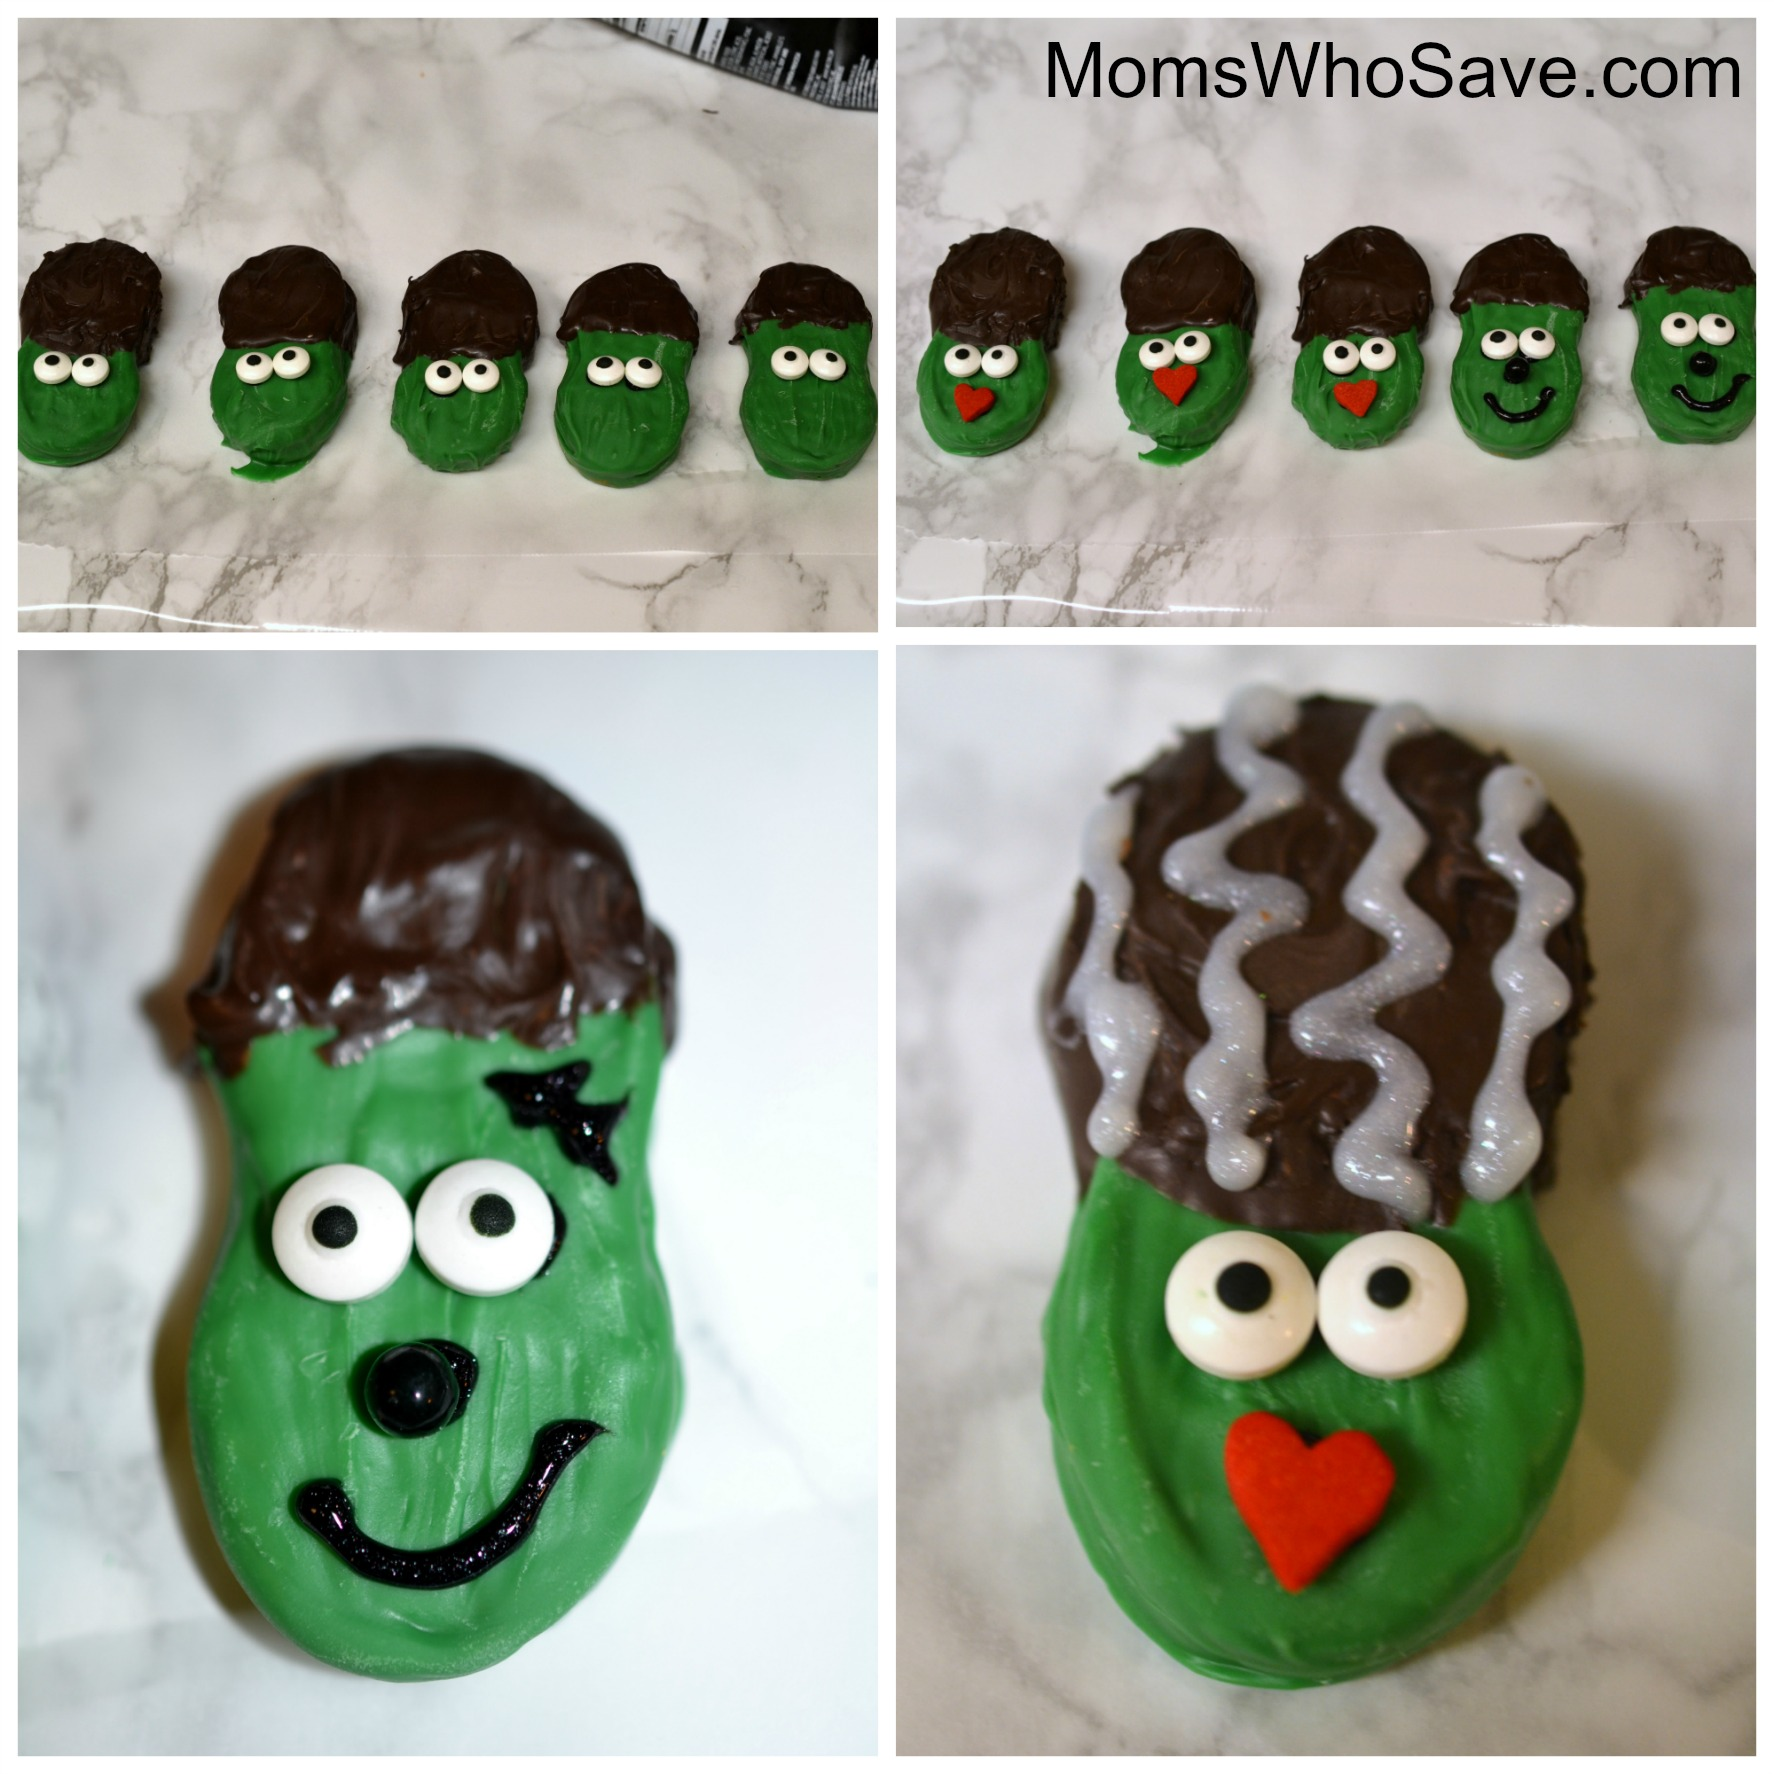 Frankenstein's Monster and Bride of Frankenstein Cookies